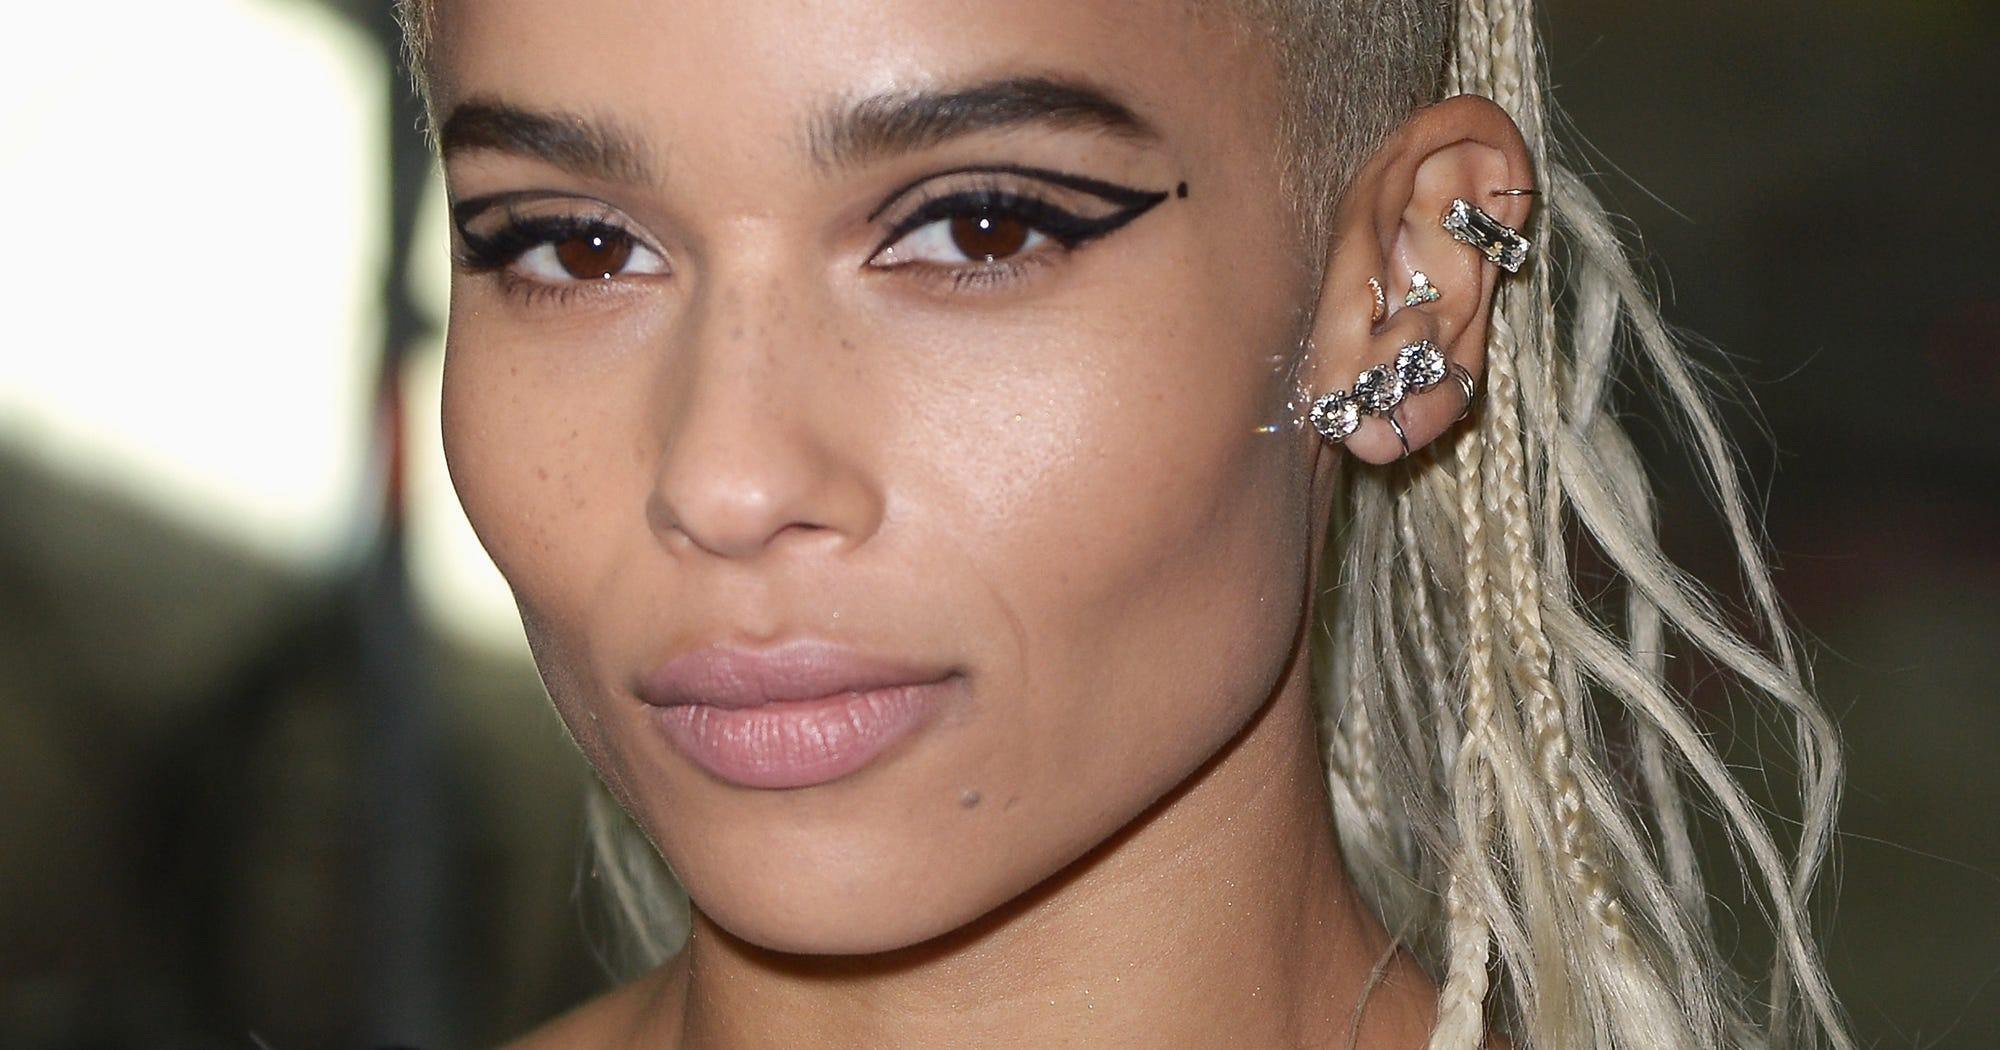 The Top 5 Fall Makeup Trends Everyone Will Be Wearing Soon